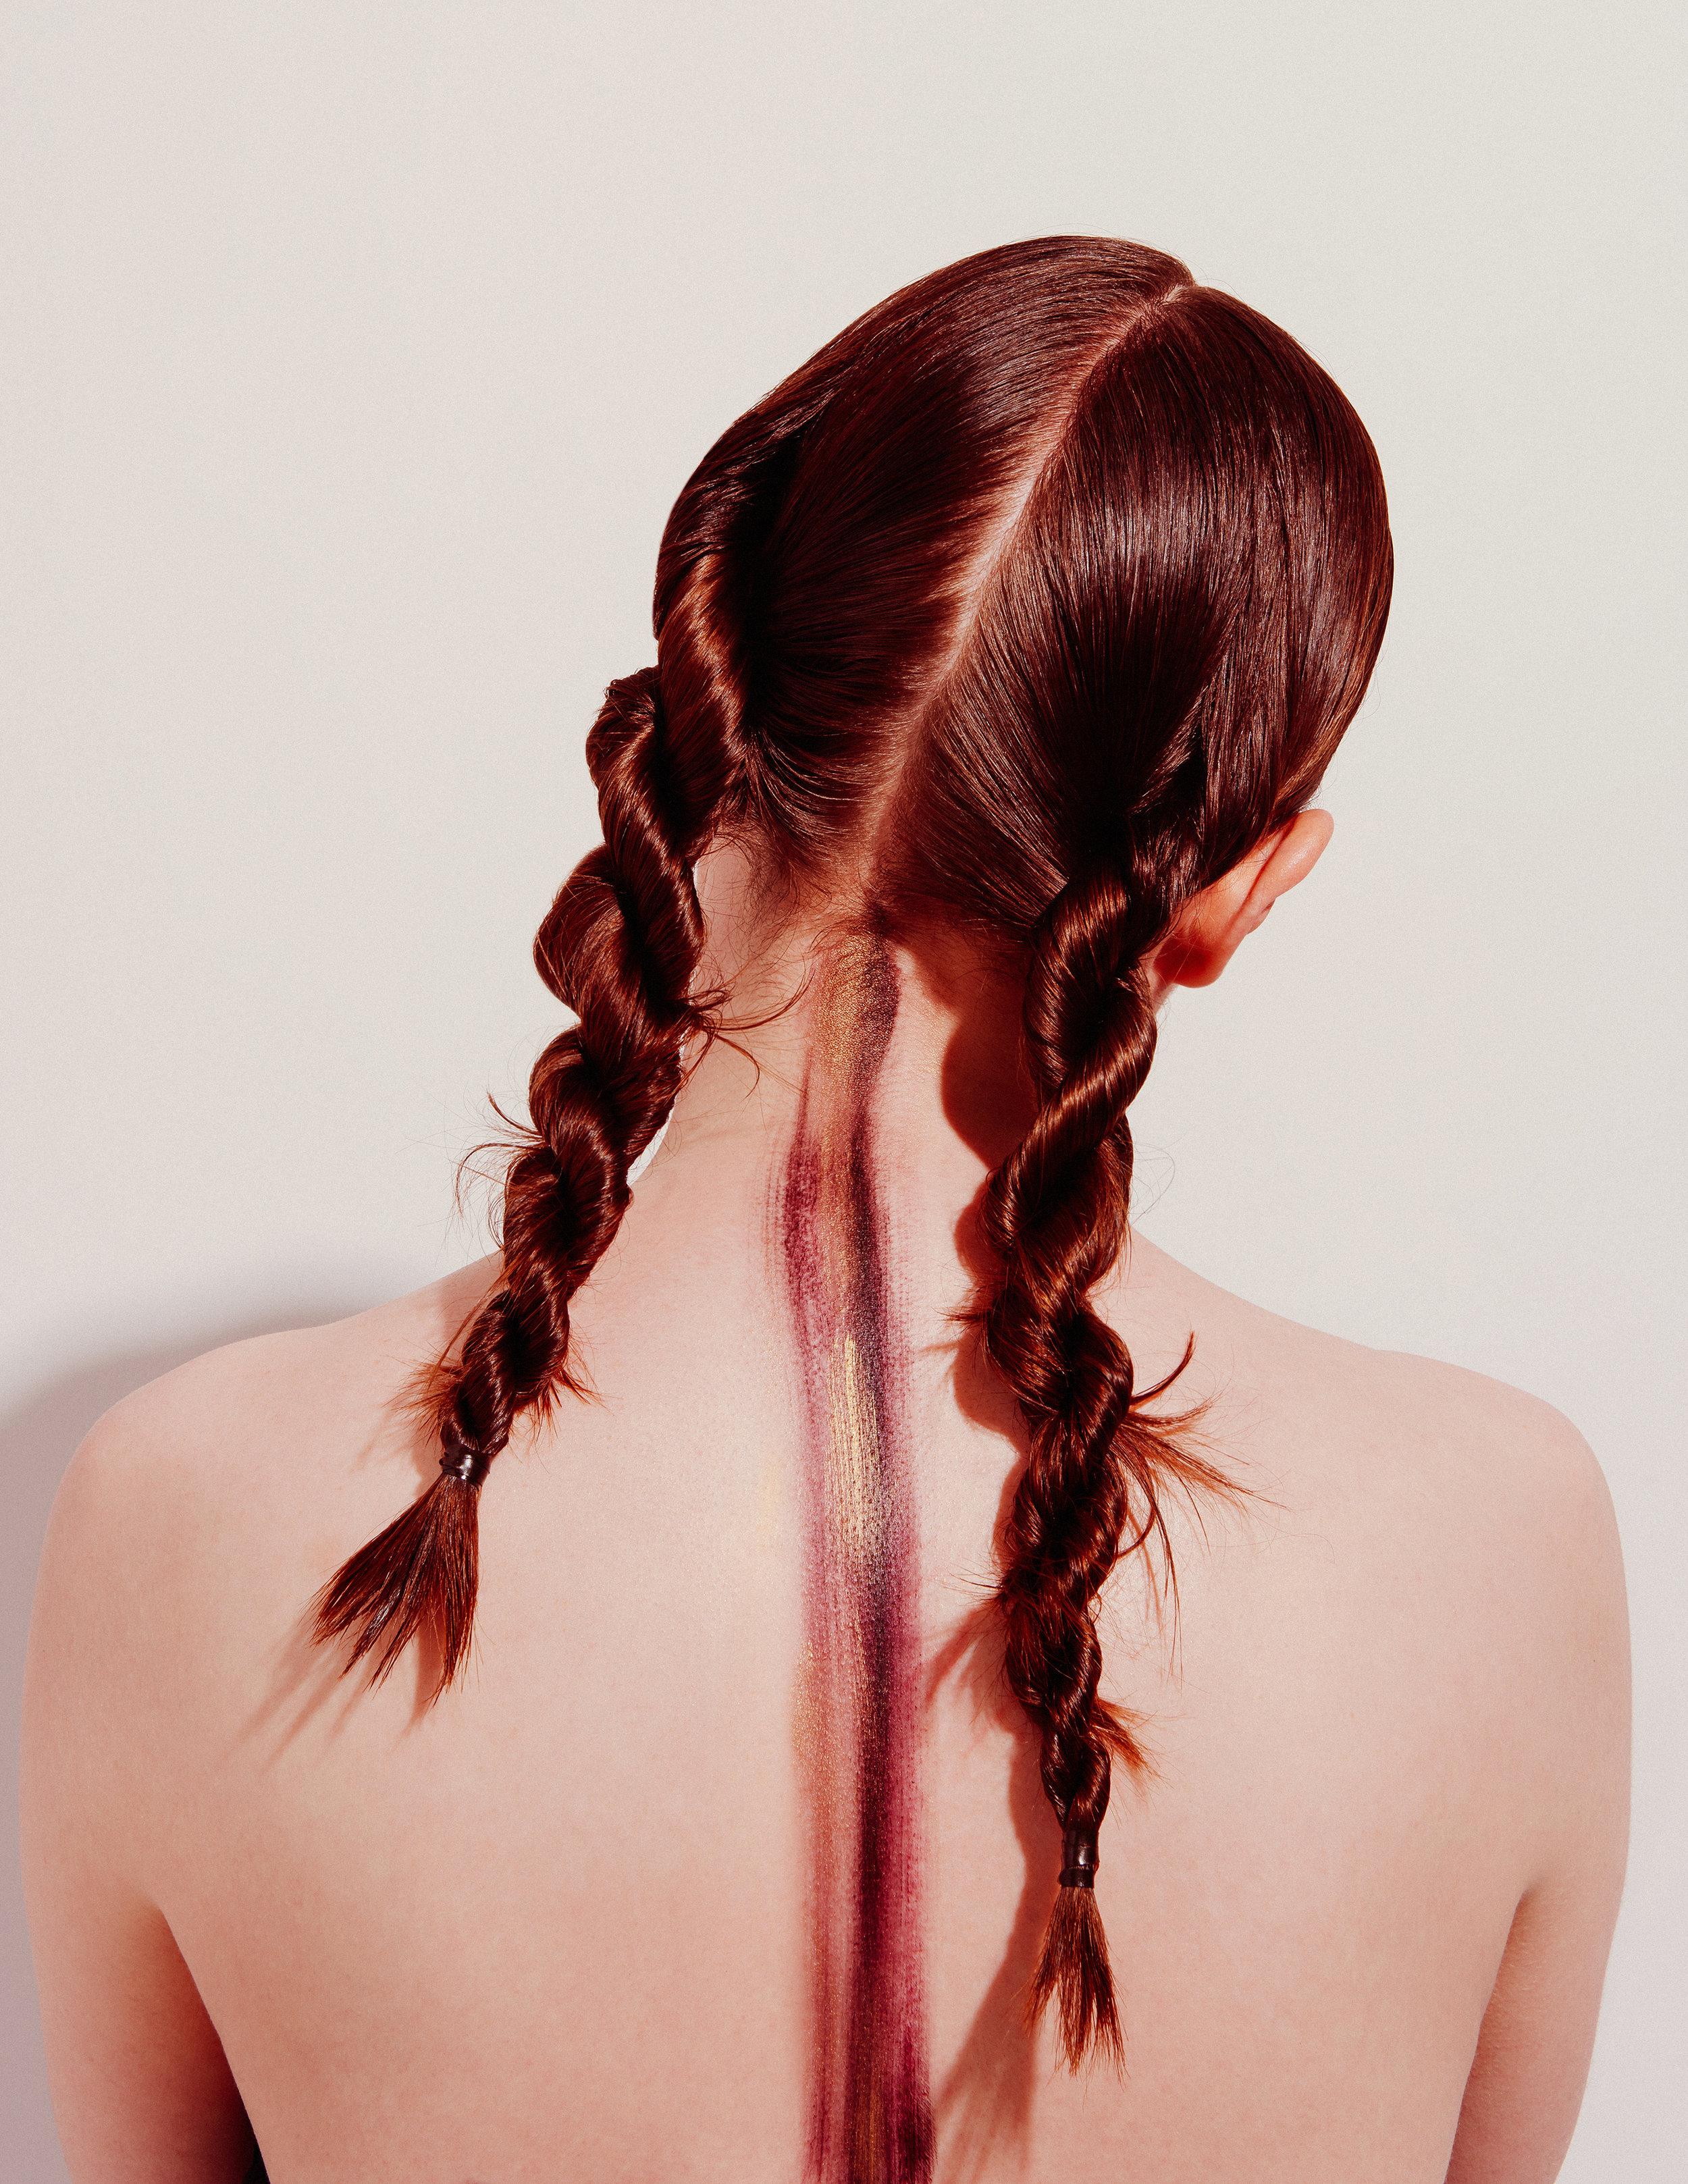 Braid Story feat. Charli Howard at Muse NYC |  Concept by Ashley Rubell. Photographed by Tiffany Nicholson.